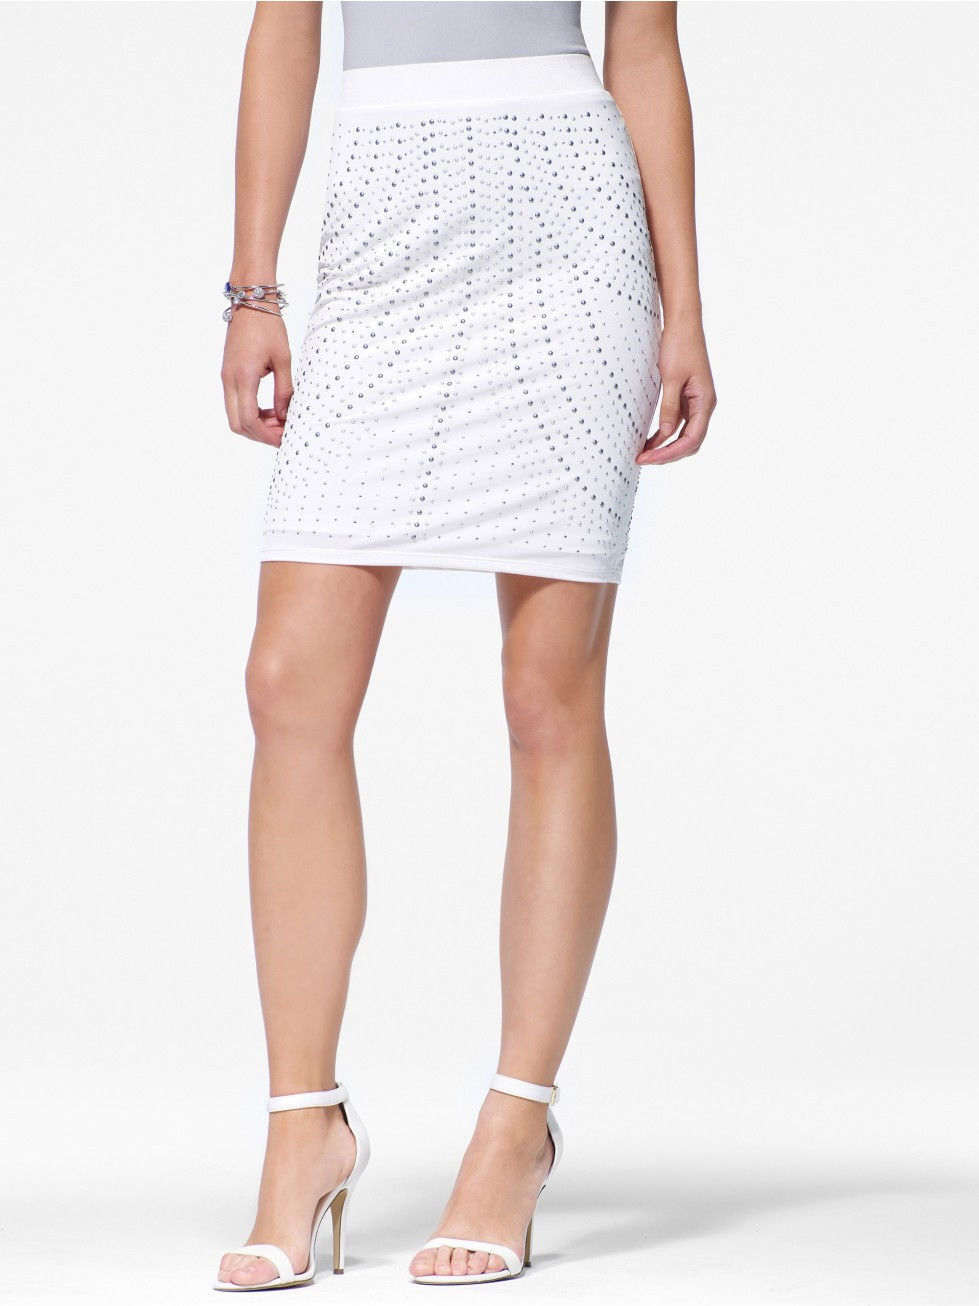 NWT CACHE White Studded Pencil Skirt  Evening  Club   2  4  6  8  10    (S M L)